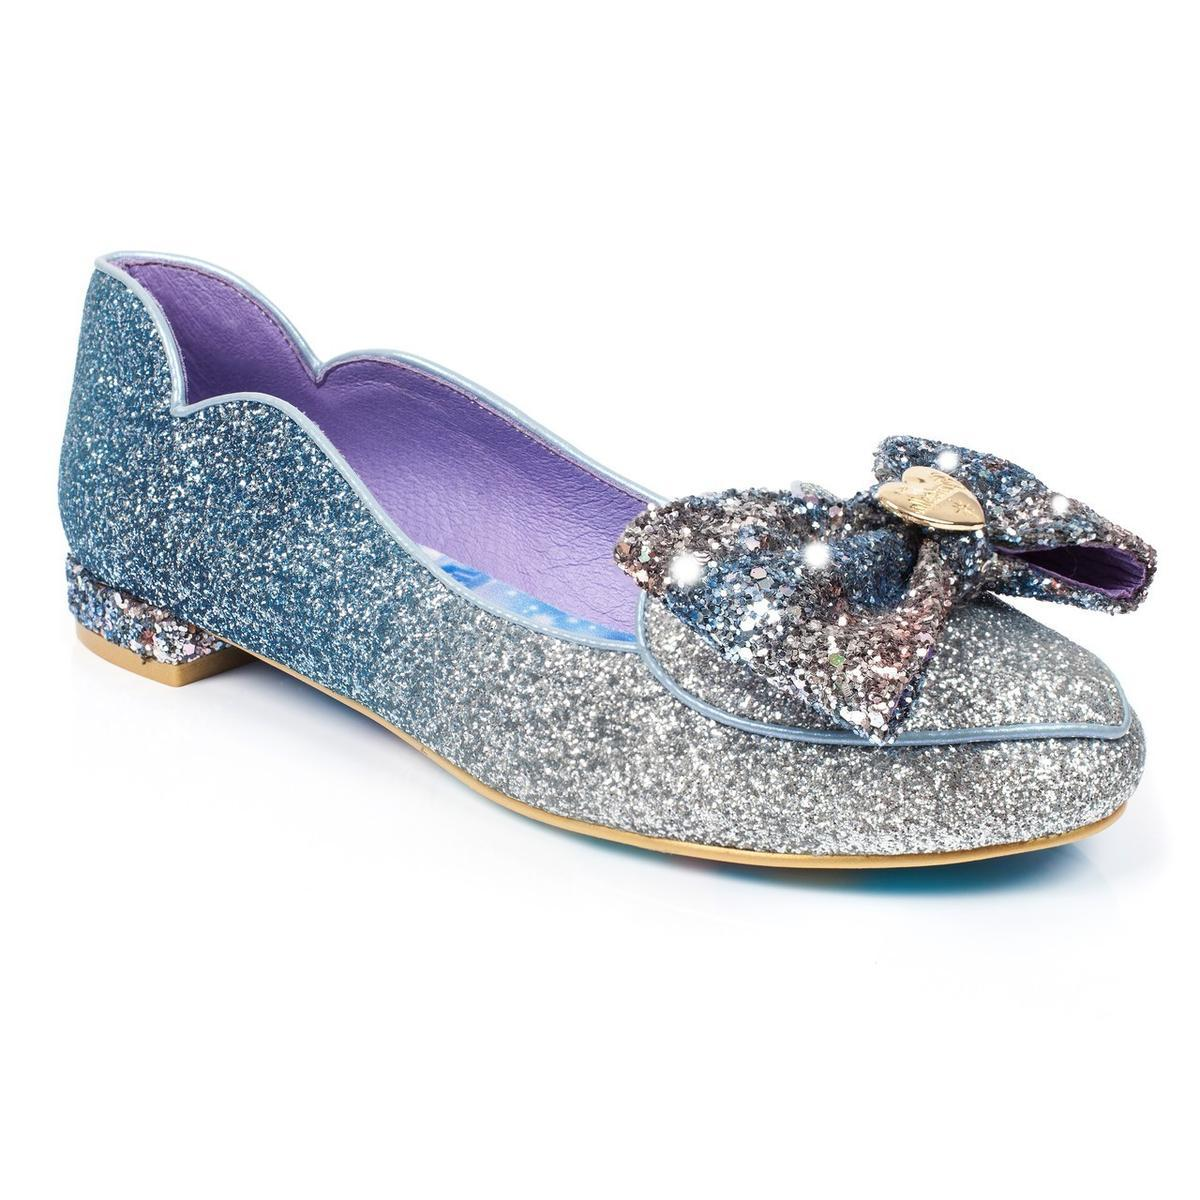 Irregular Choice Cinderella Collection: A Glittering Entrance Flats